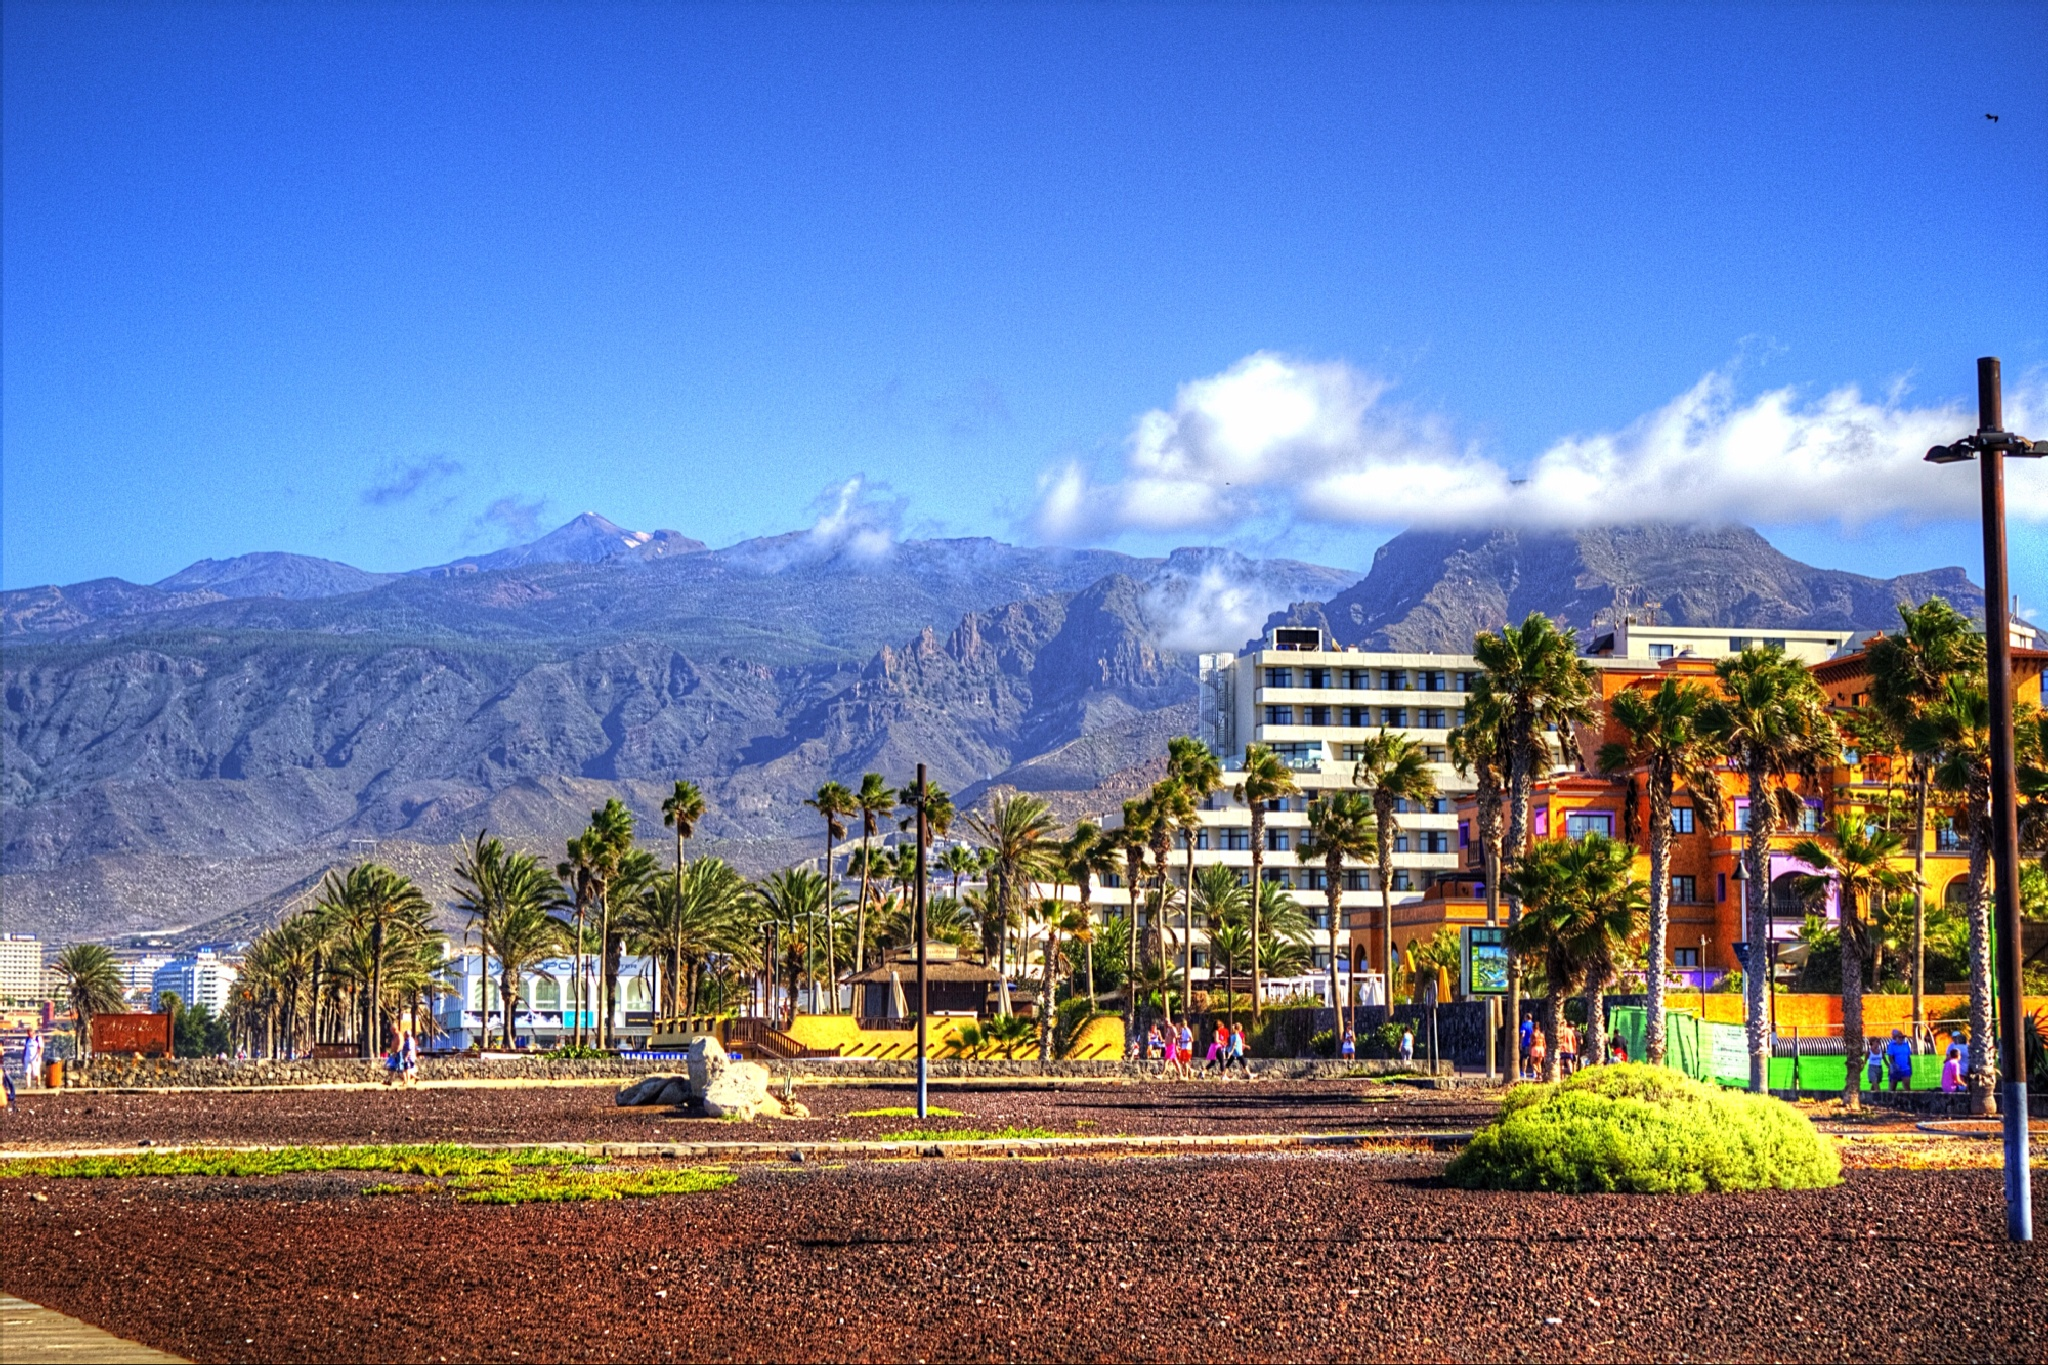 Mount Teide from the beach by barterfletcher